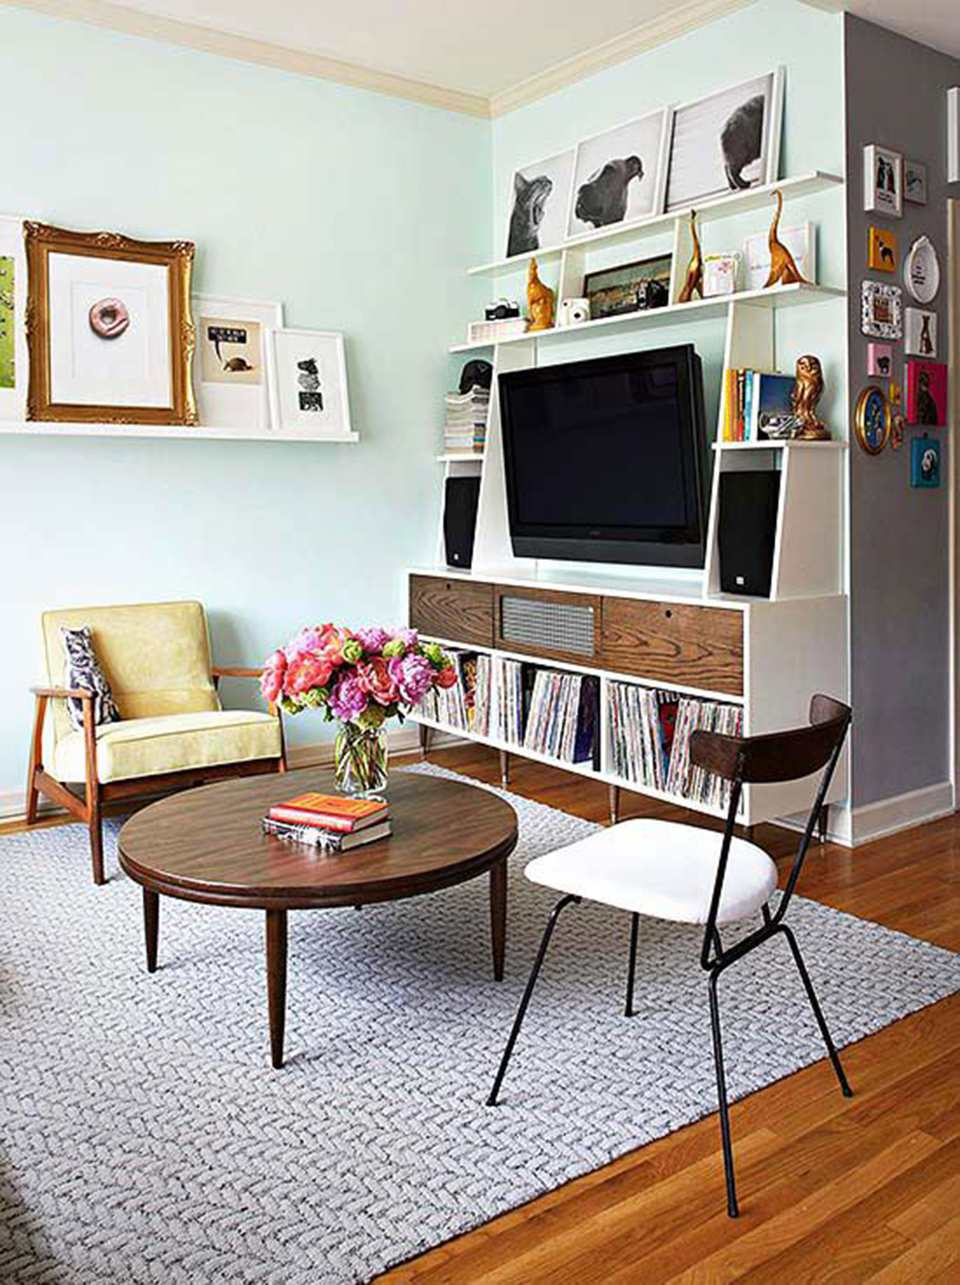 6 Tips For Decorating A Small Space